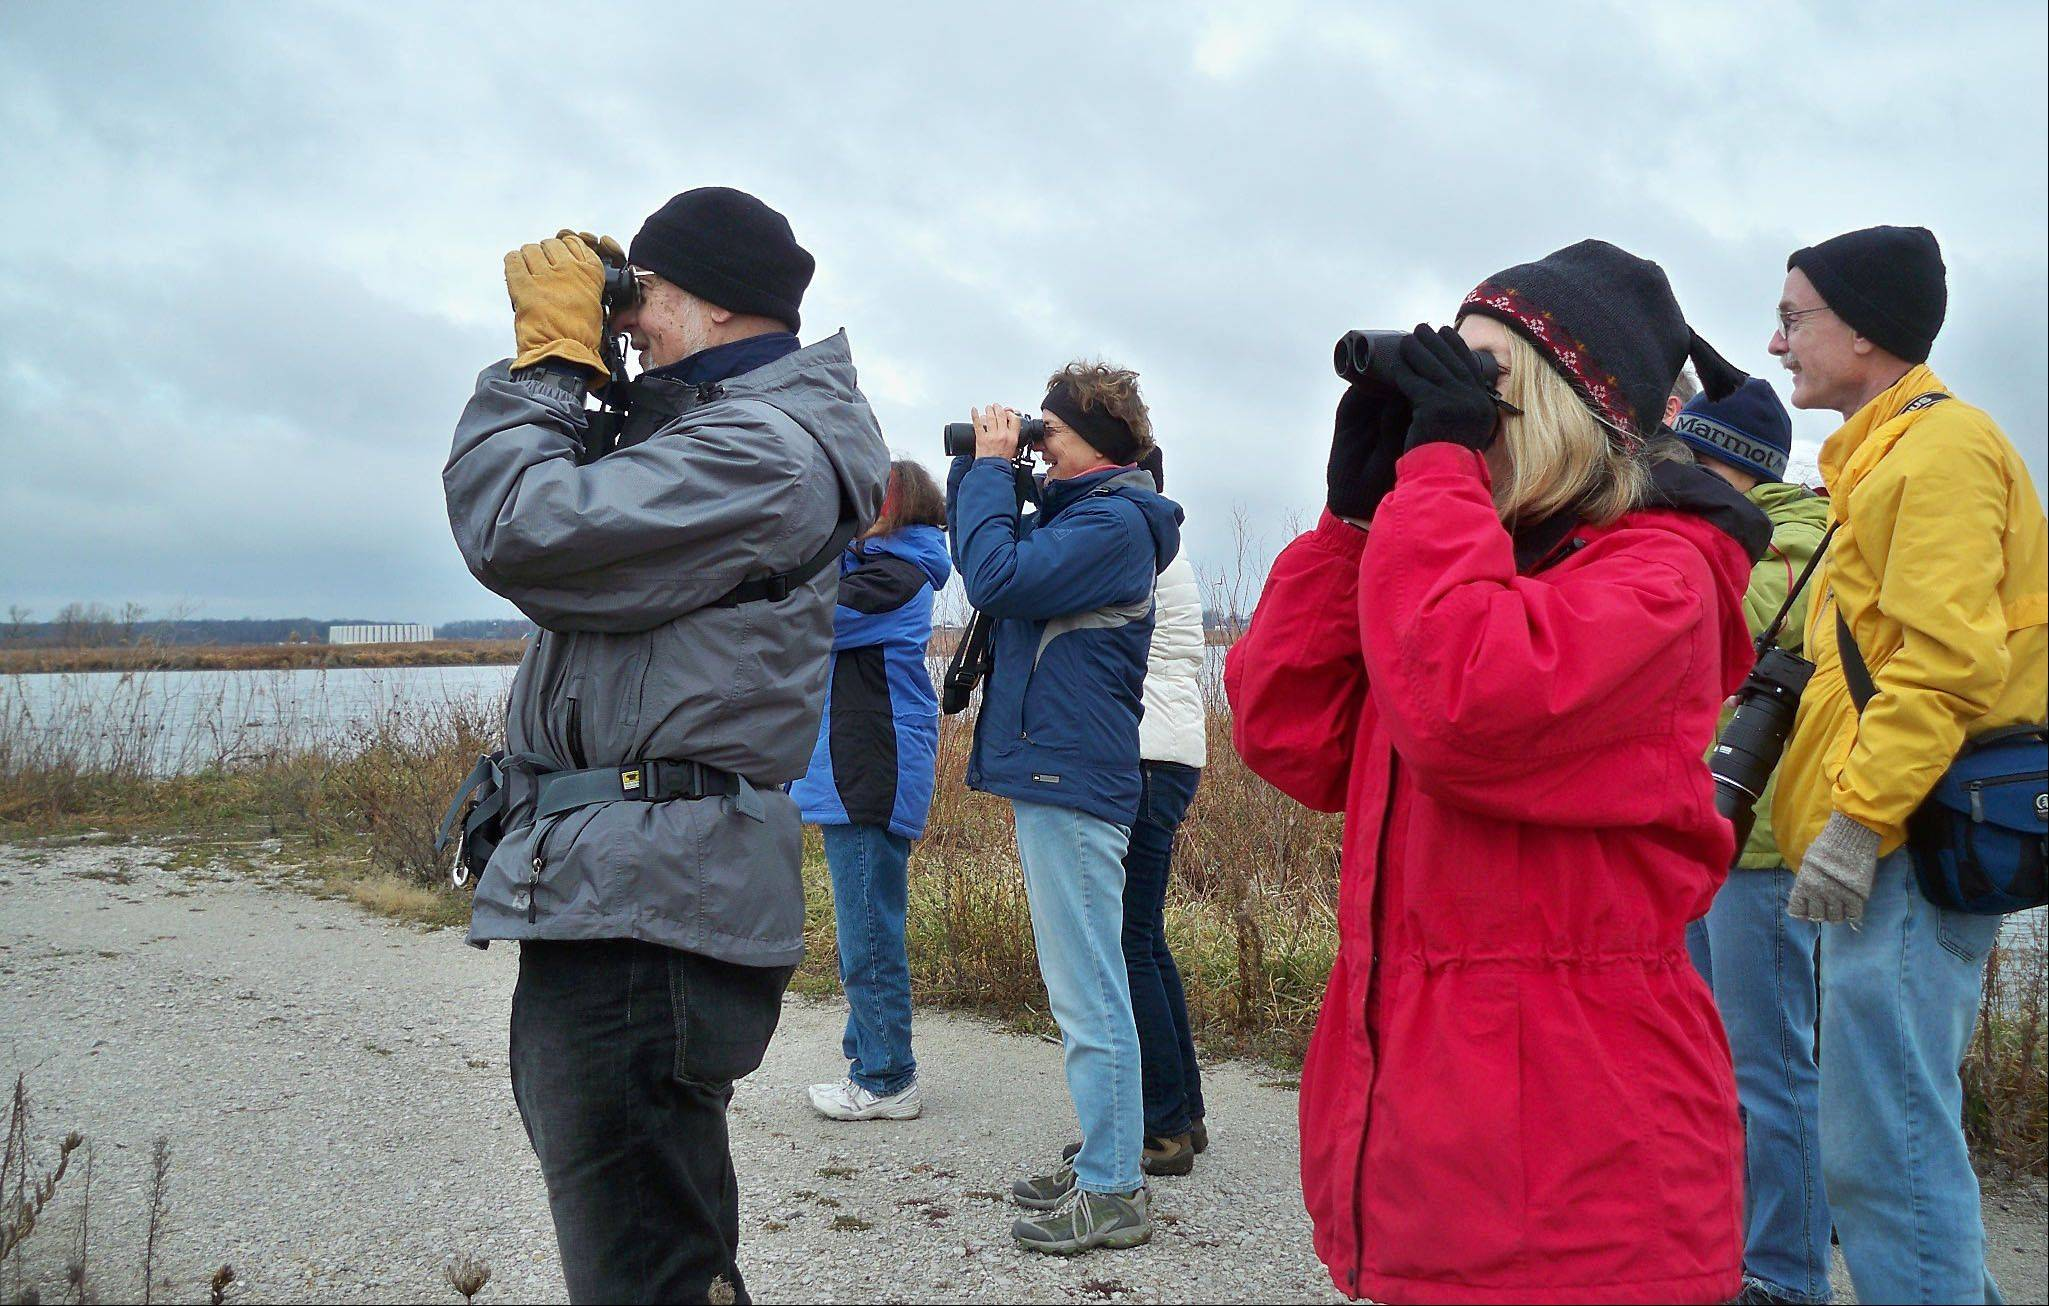 Naturalist Jack Pomatto leads a group of Kane County Certified Naturalists on a birding class at Fermilab in Batavia. From left are graduates Kim Haag, Barb McKittrick and student Alan Roberston.